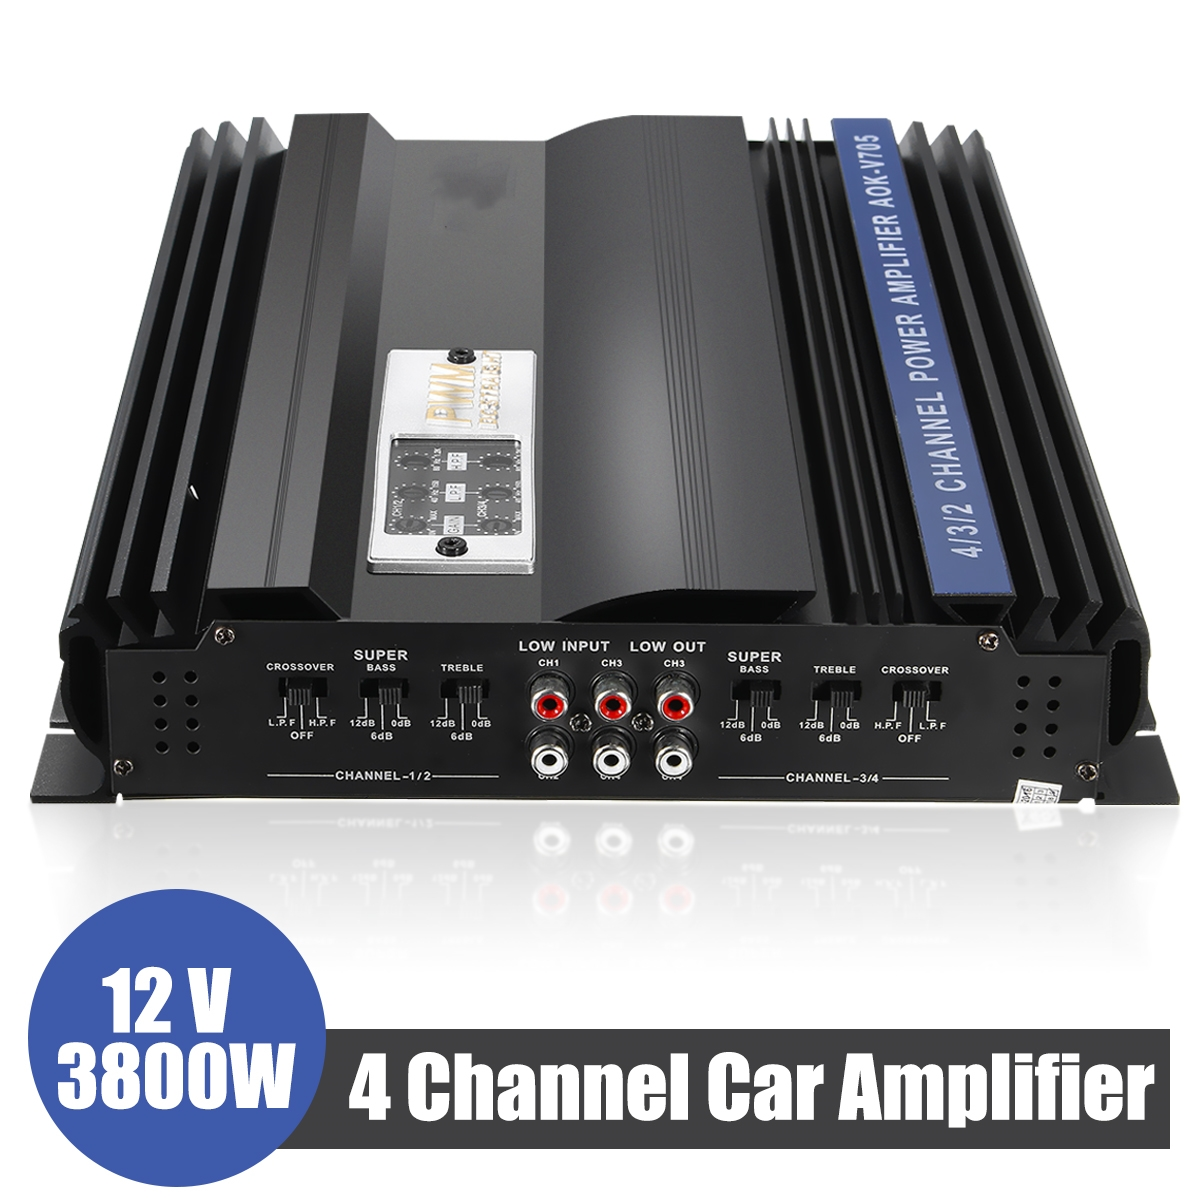 3800W 4 Channels Car Amplifier Speaker Car Audio Stereo Bass Amplifier Super Bass Output Power Stereo Amplifier Car Audio Player цена